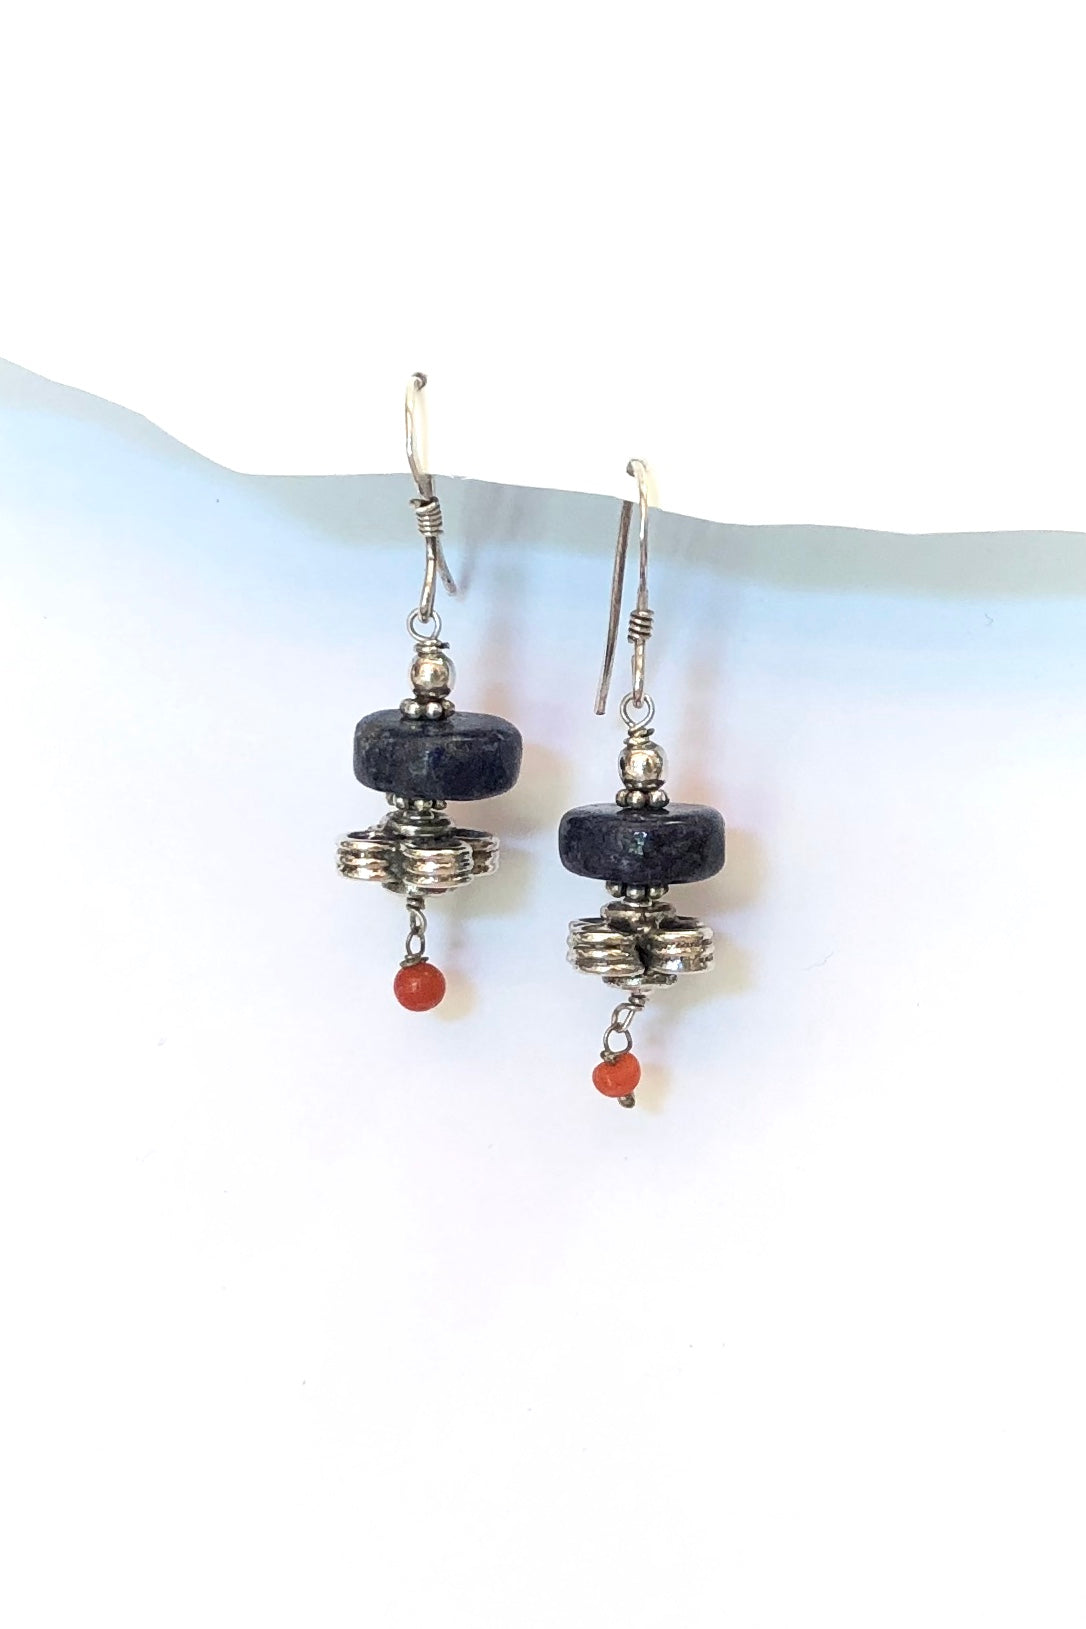 Echo Earrings Lapis and Coral are made of 925 silver with a circular Lapis Lazuli bead, a silver fancy bead and a little coral drop.